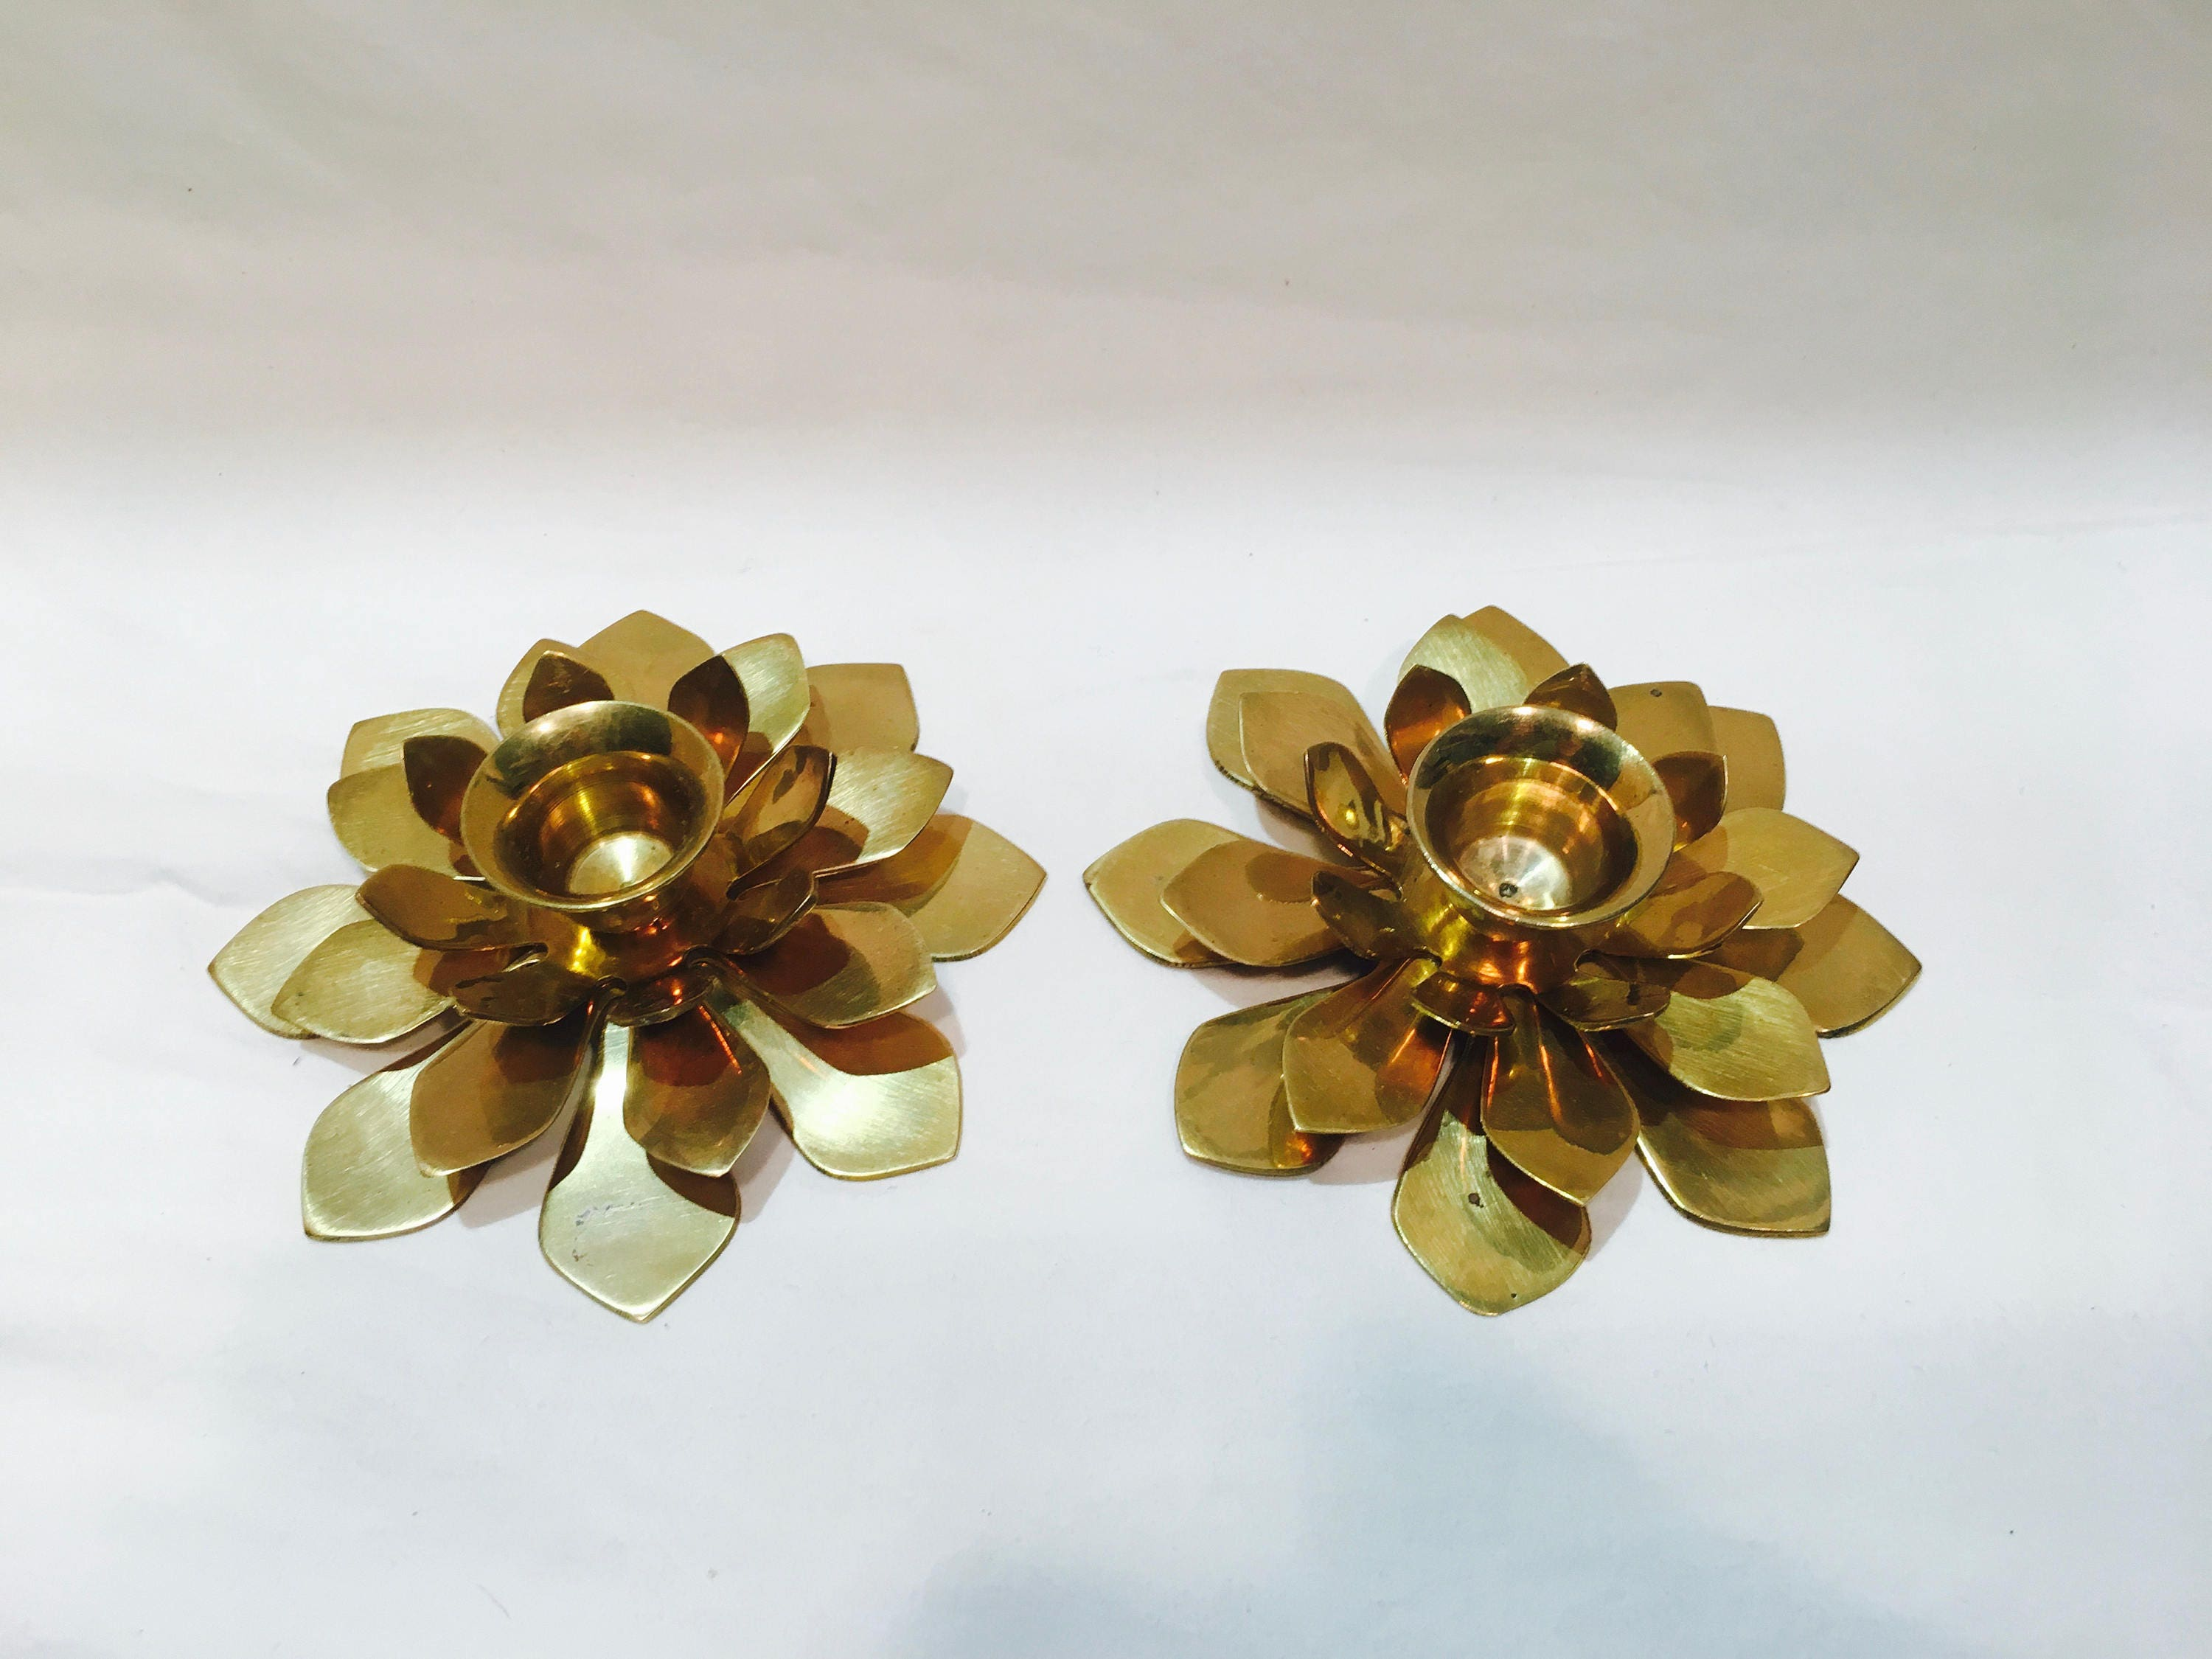 Pair Of Brass Flower Candlesticks Brass Lotus Candlesticks Modern